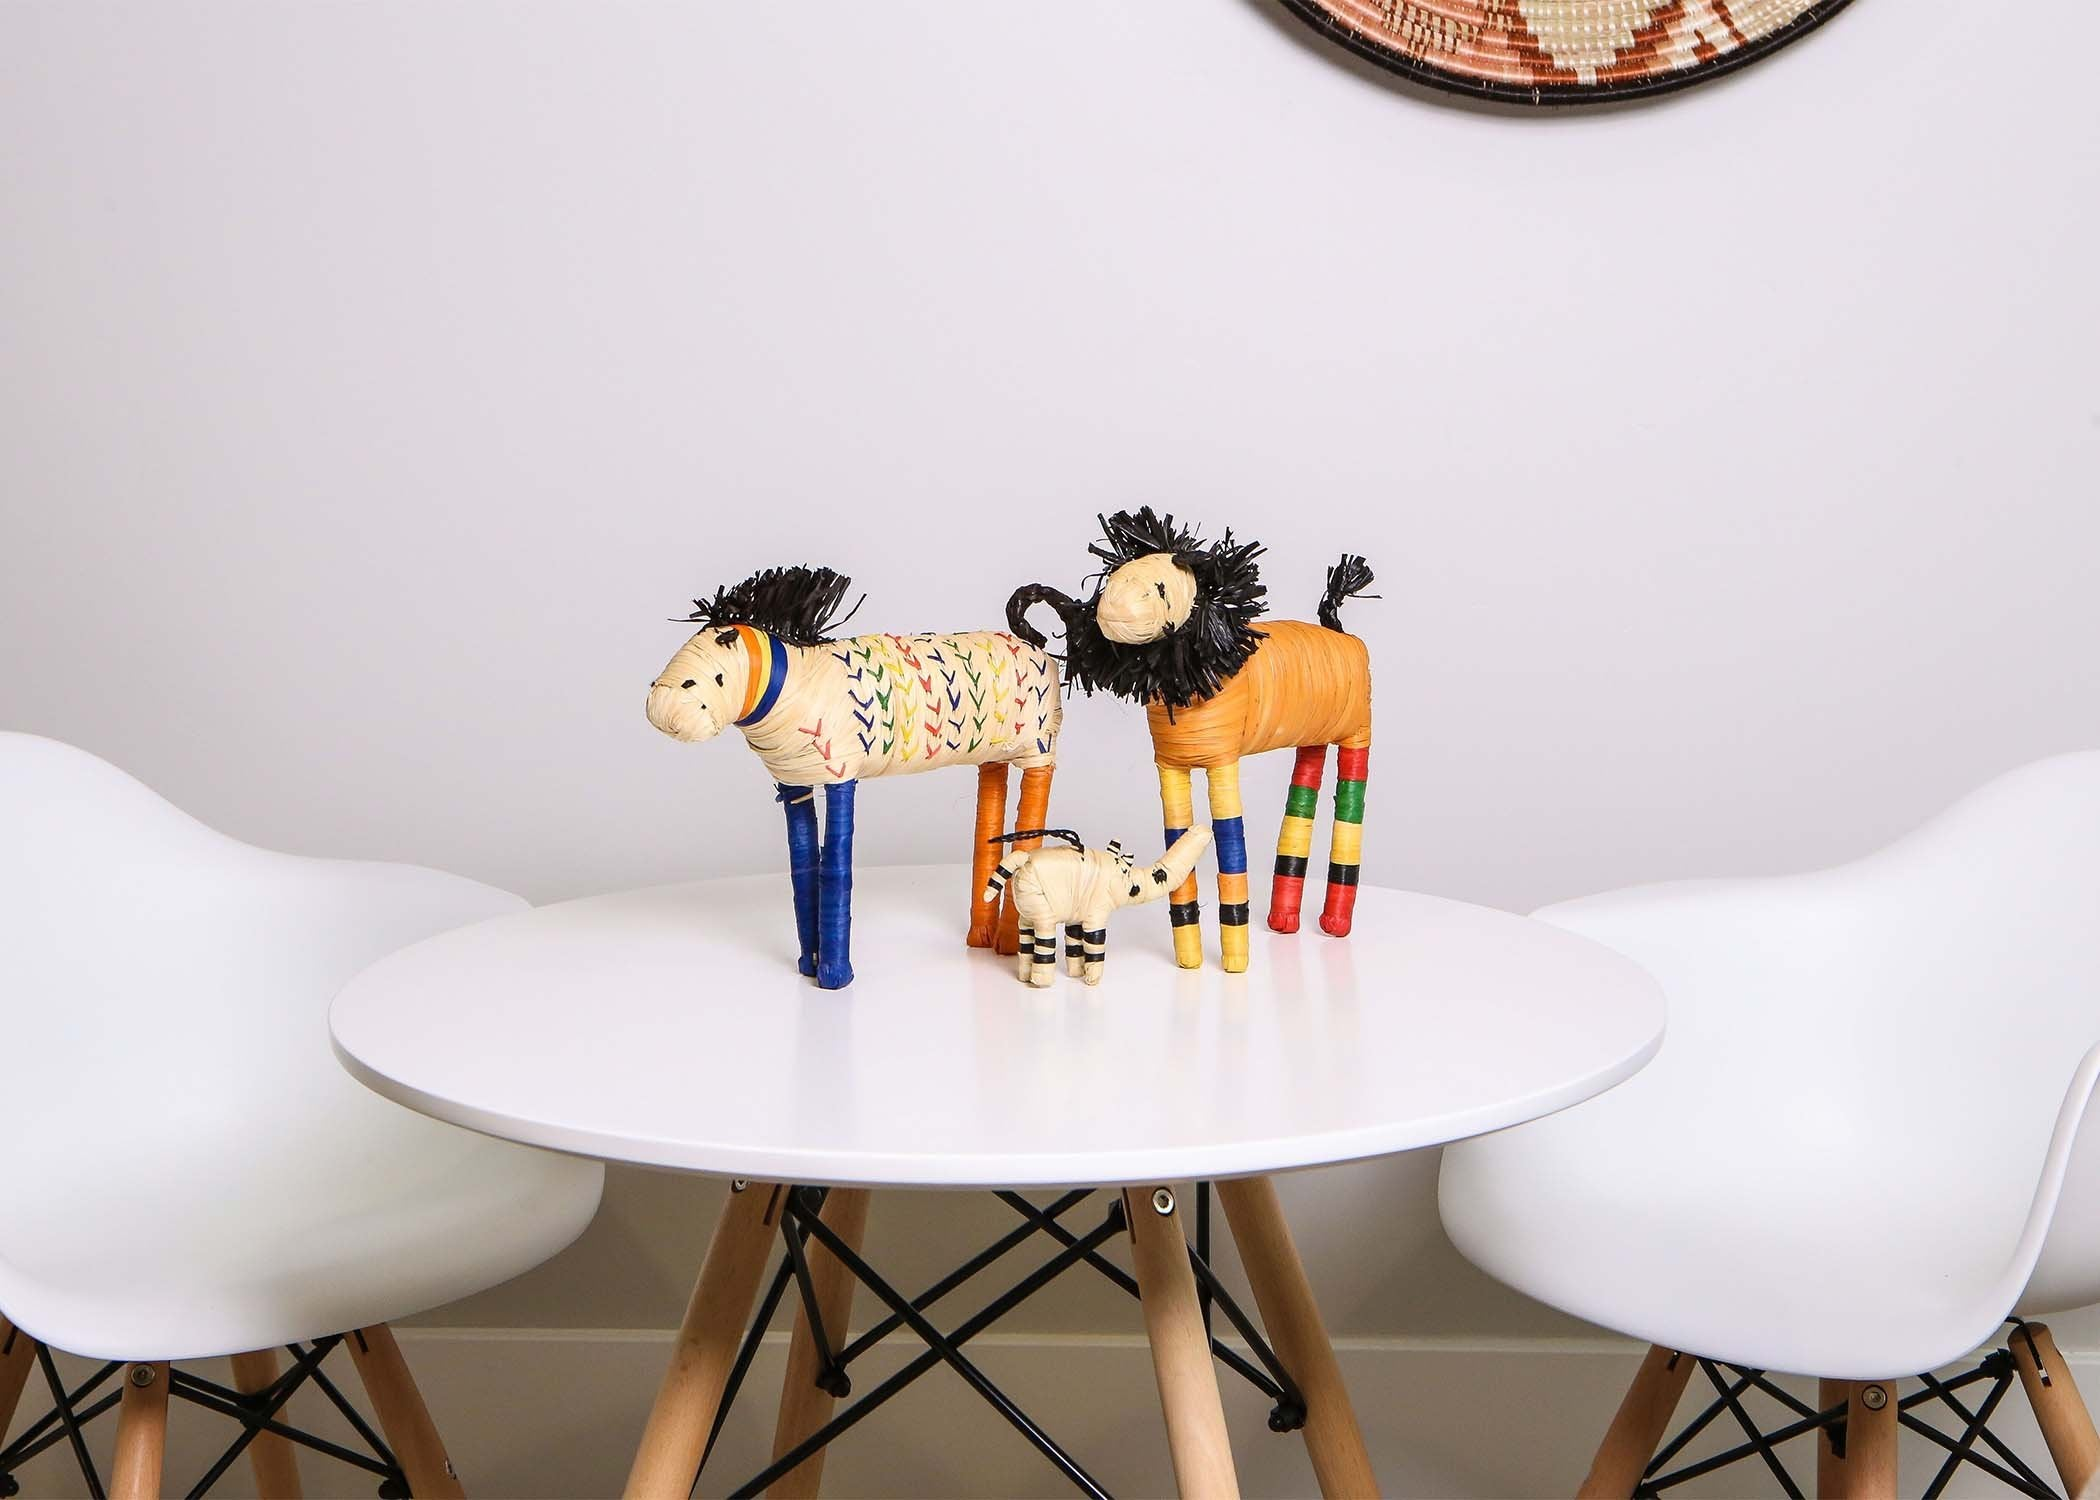 Primary Colors Raffia Horse Shelf Decor - KAZI - Artisan made high quality home decor and wall art